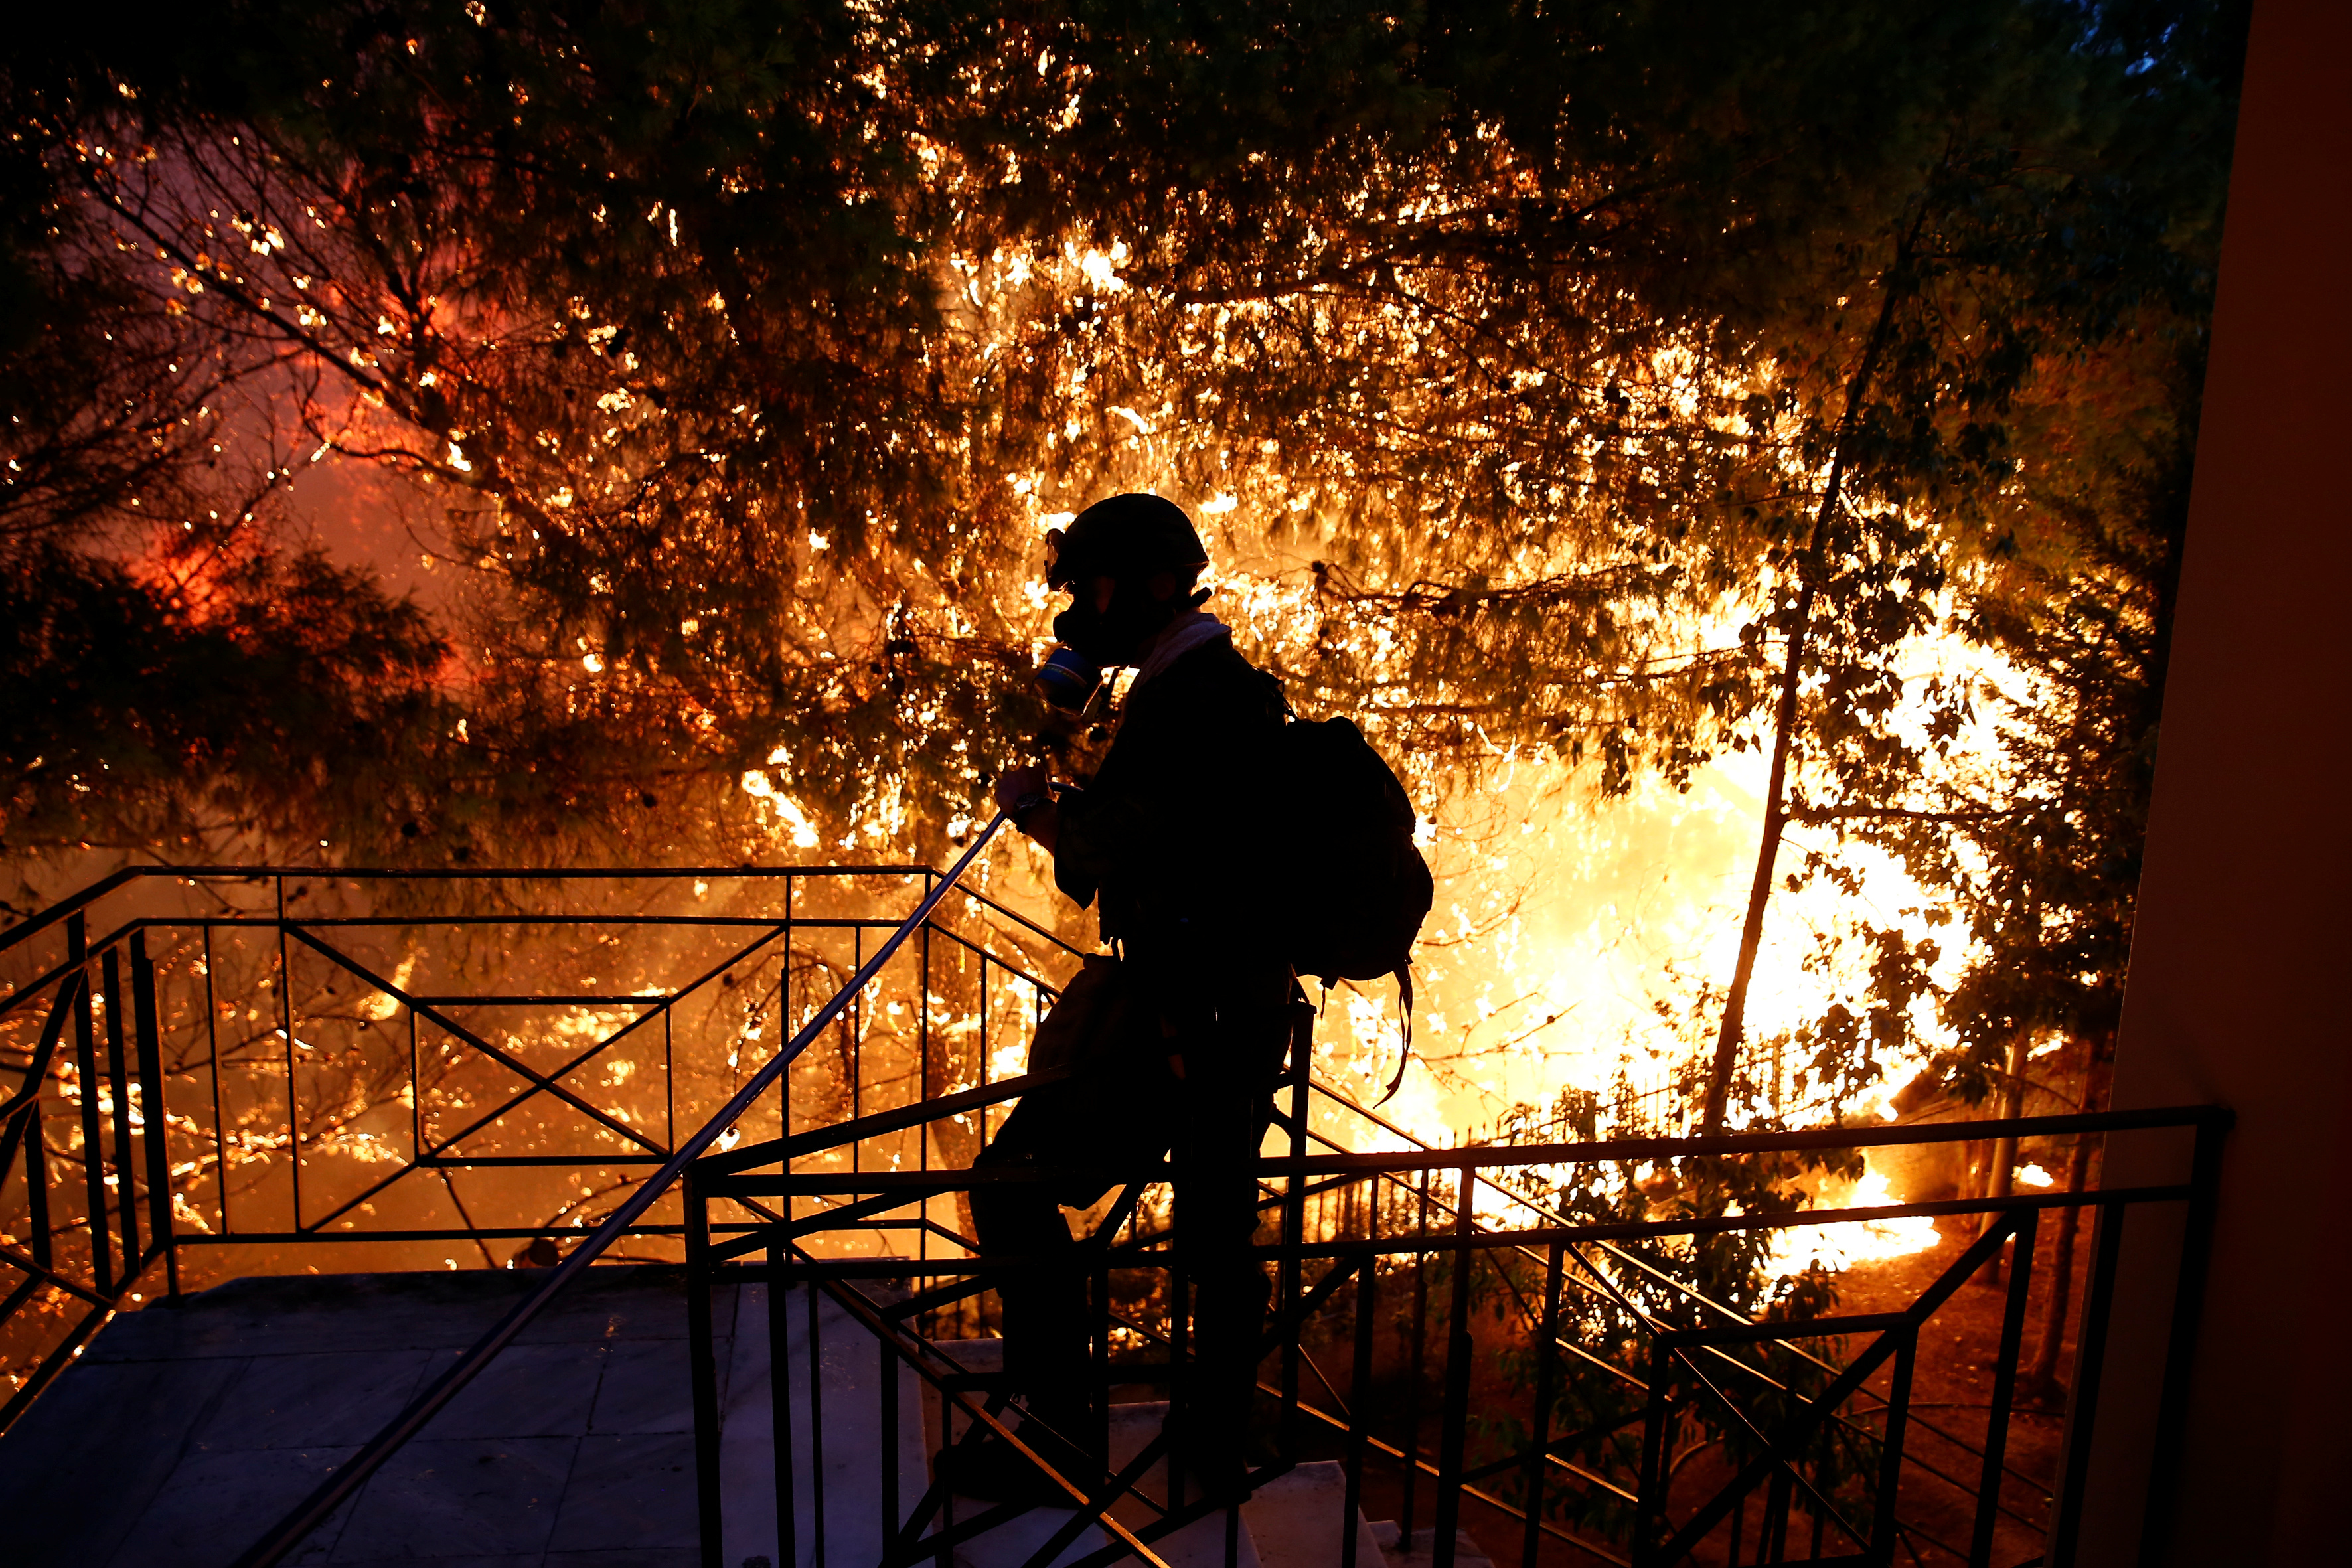 FILE PHOTO: A volunteer throws water through a hose as a wildfire burns in the town of Rafina, near Athens, Greece, July 23, 2018. REUTERS/Costas Baltas